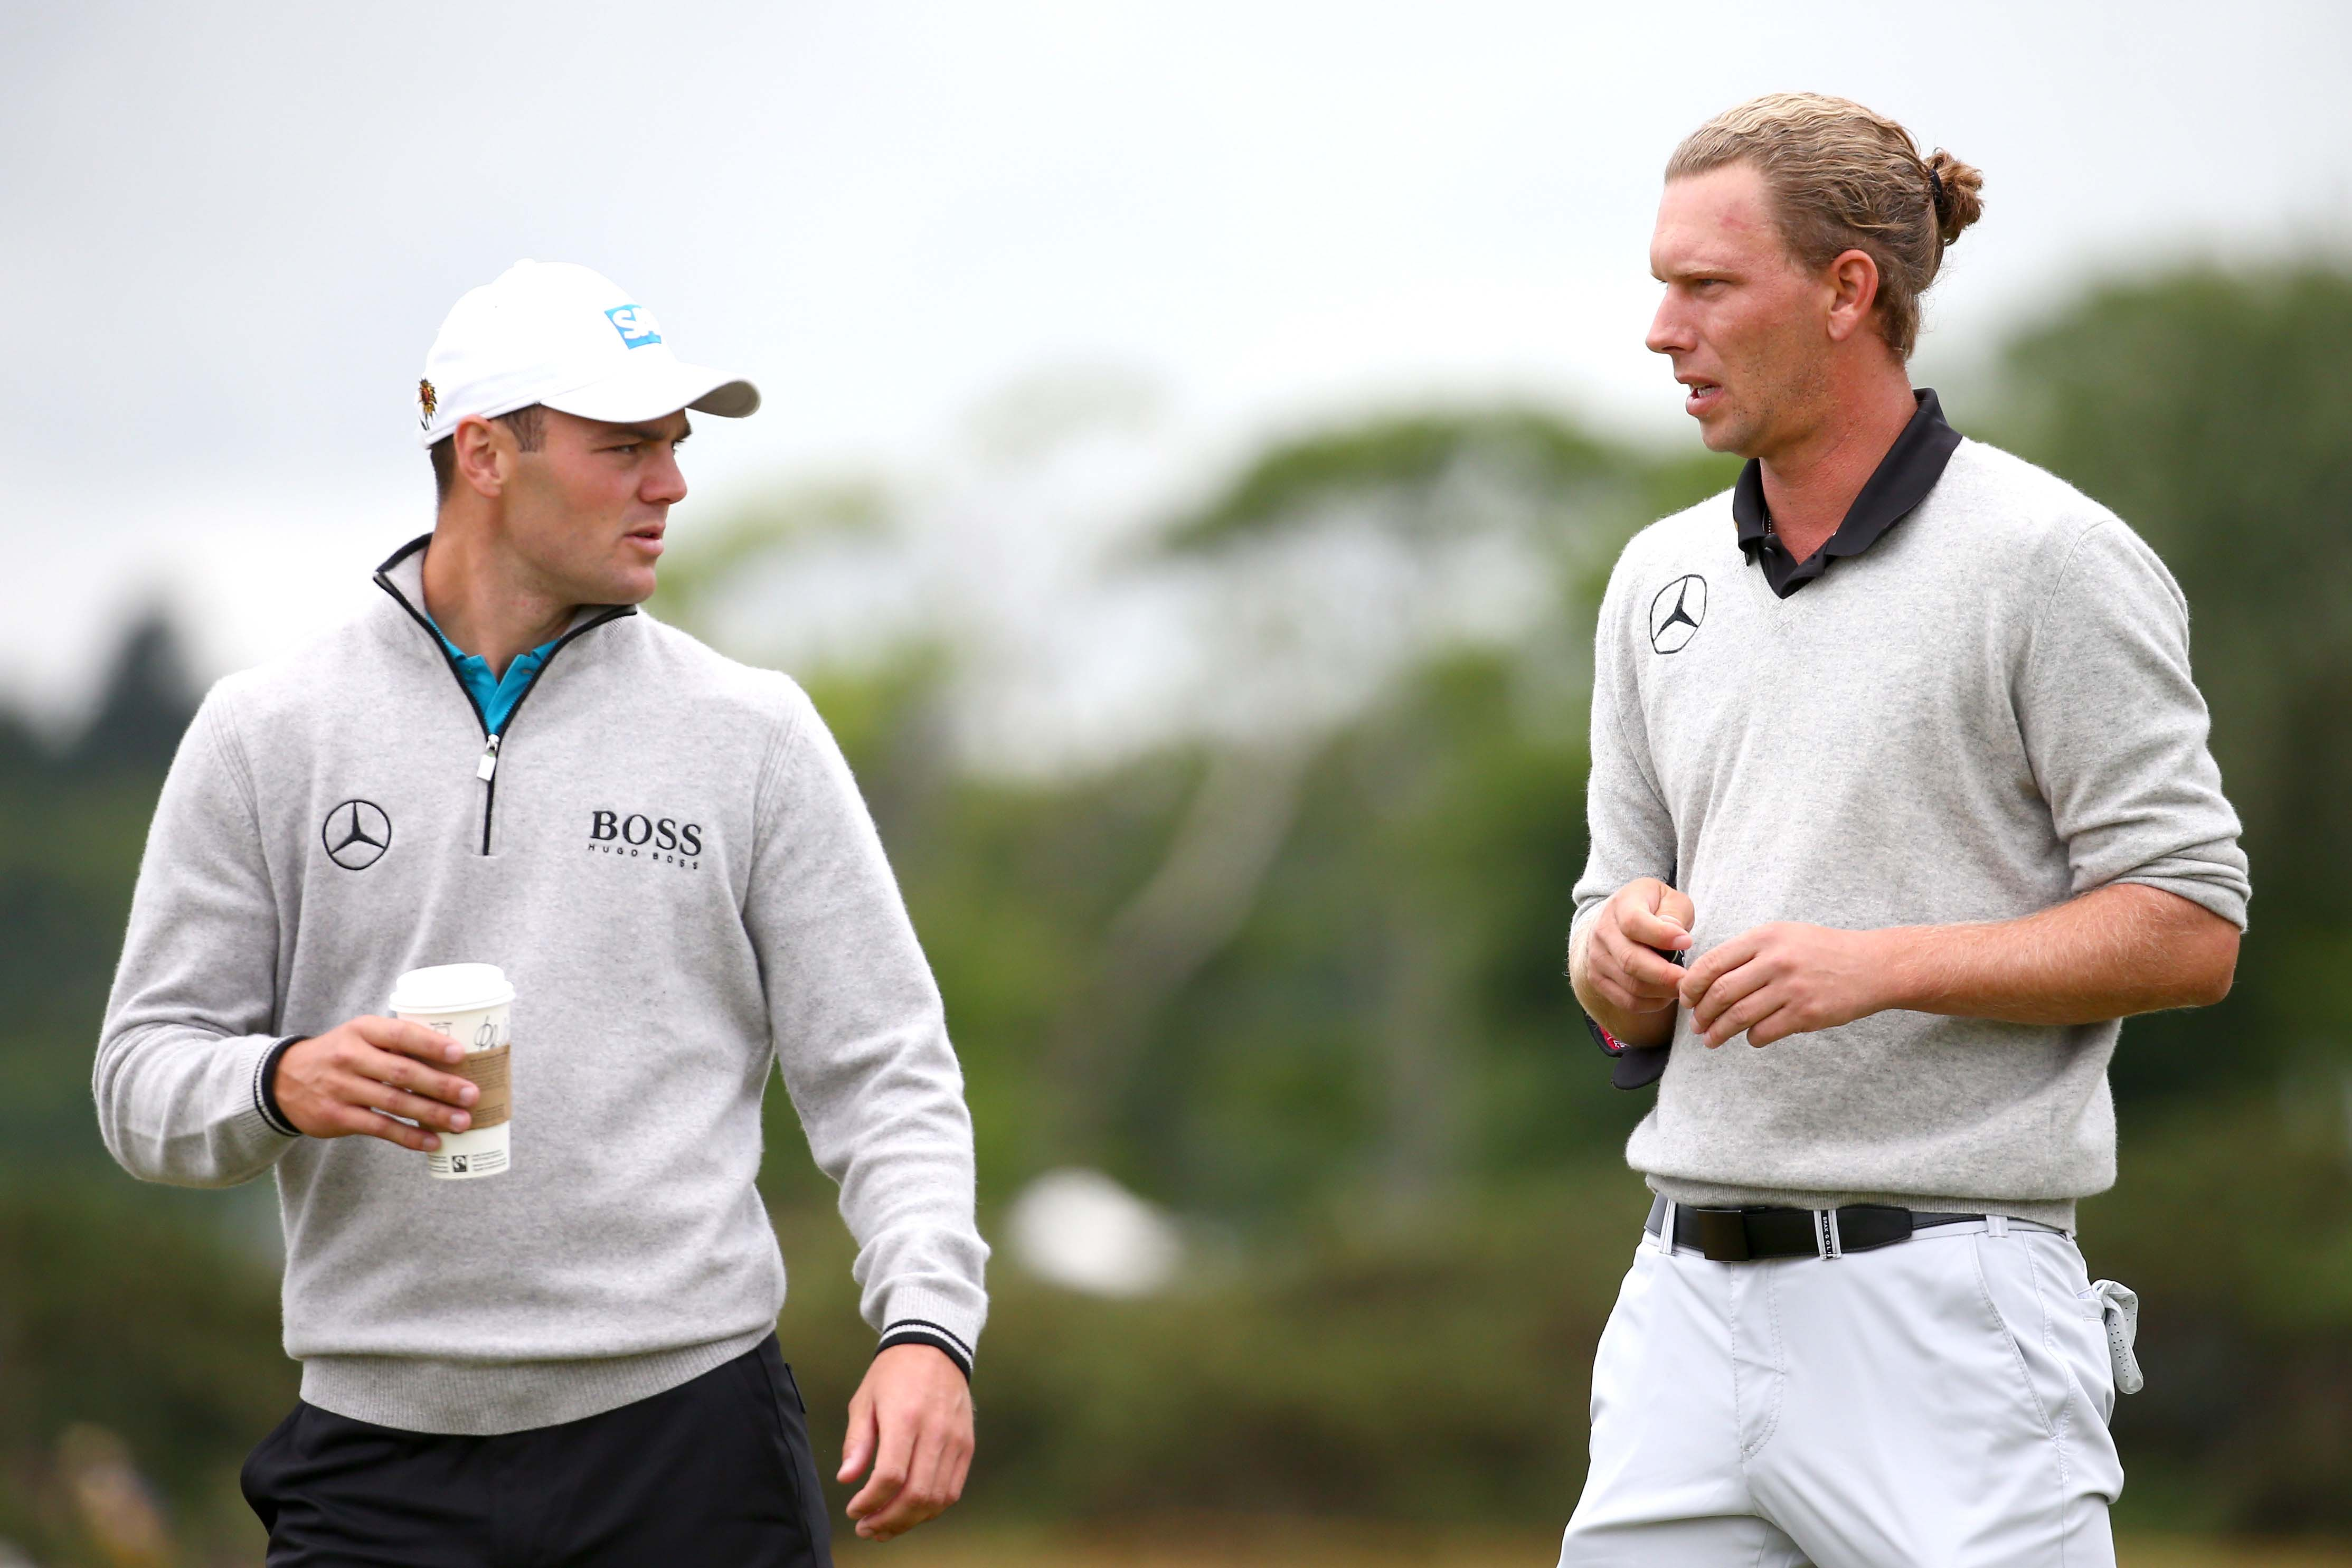 Marcel Siem (R) and Martin Kaymer